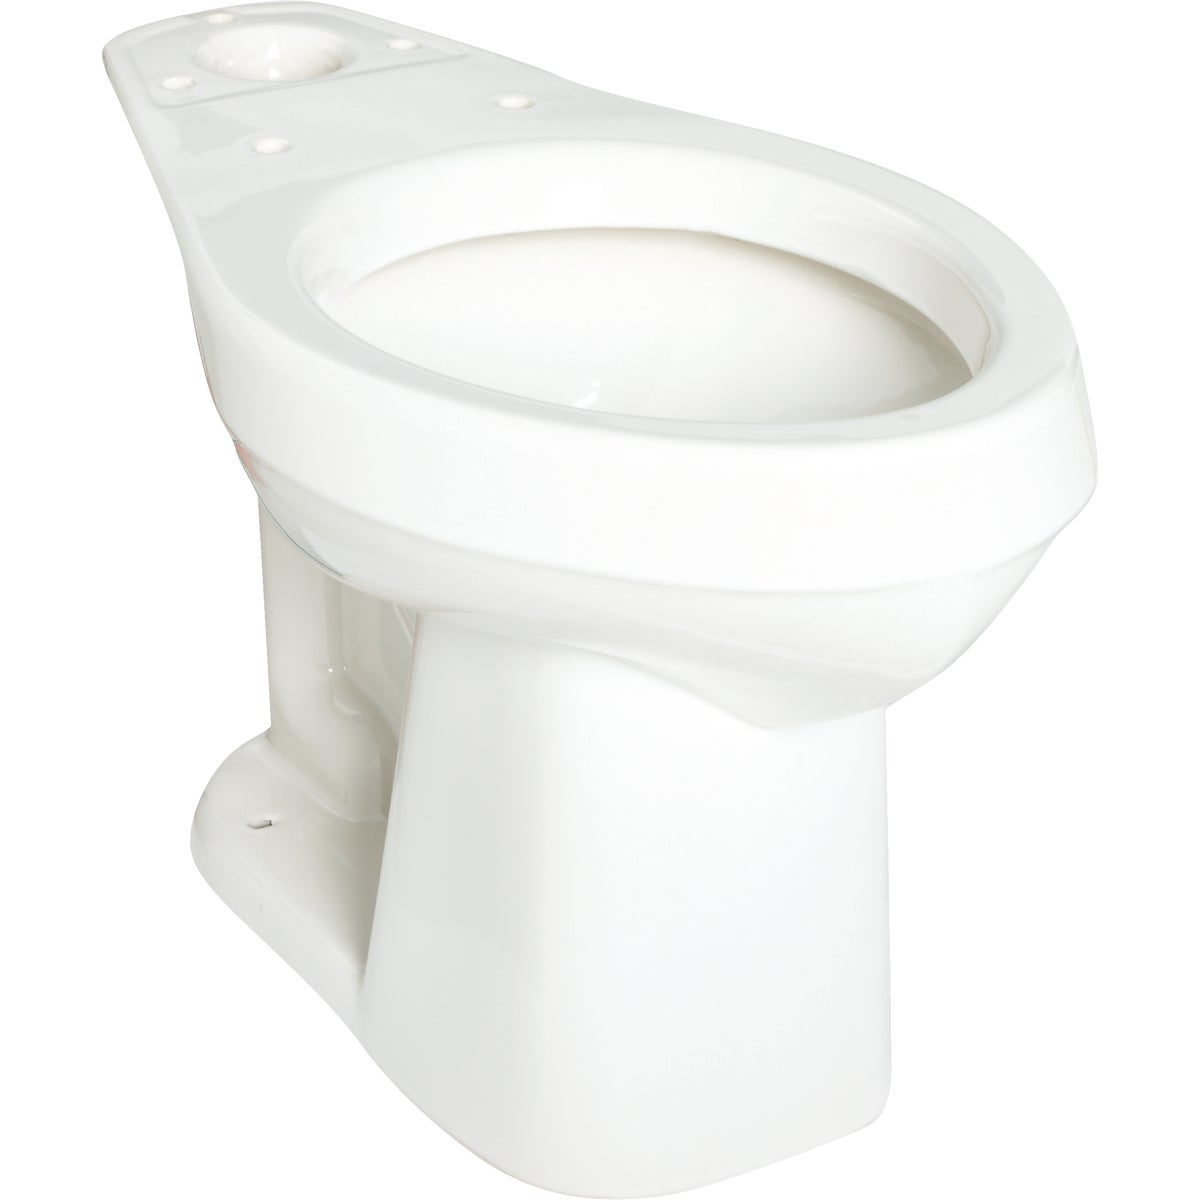 "10"" ADA WHT TOILET BOWL - 4139 by Mansfield Plumbing"